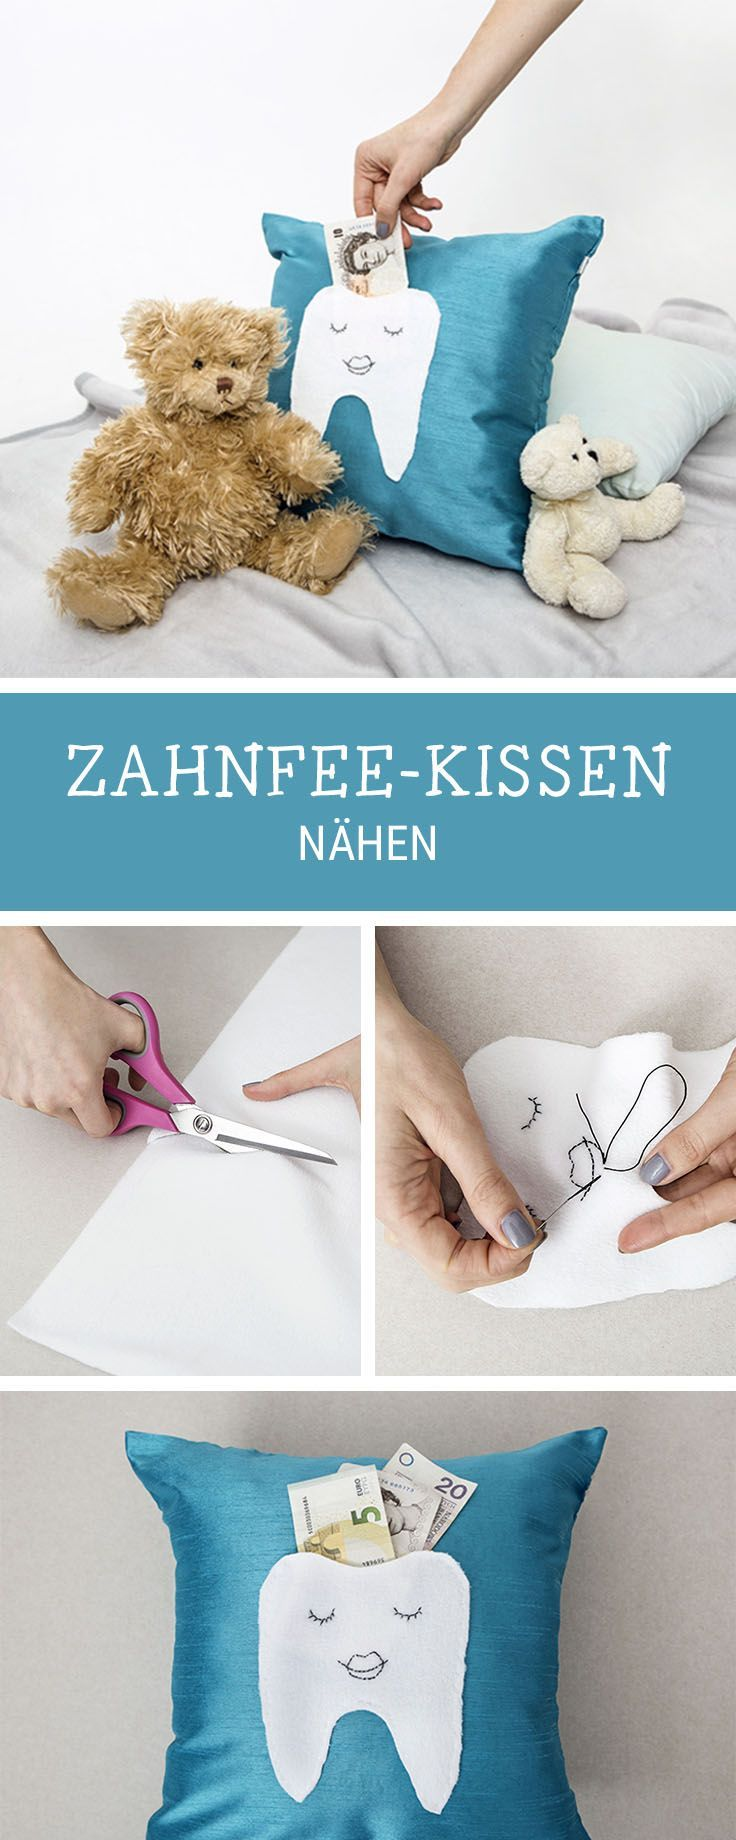 n hanleitung f rs kinderzimmer zahnfee kissen mit tasche n hen diy inspiration for kids. Black Bedroom Furniture Sets. Home Design Ideas